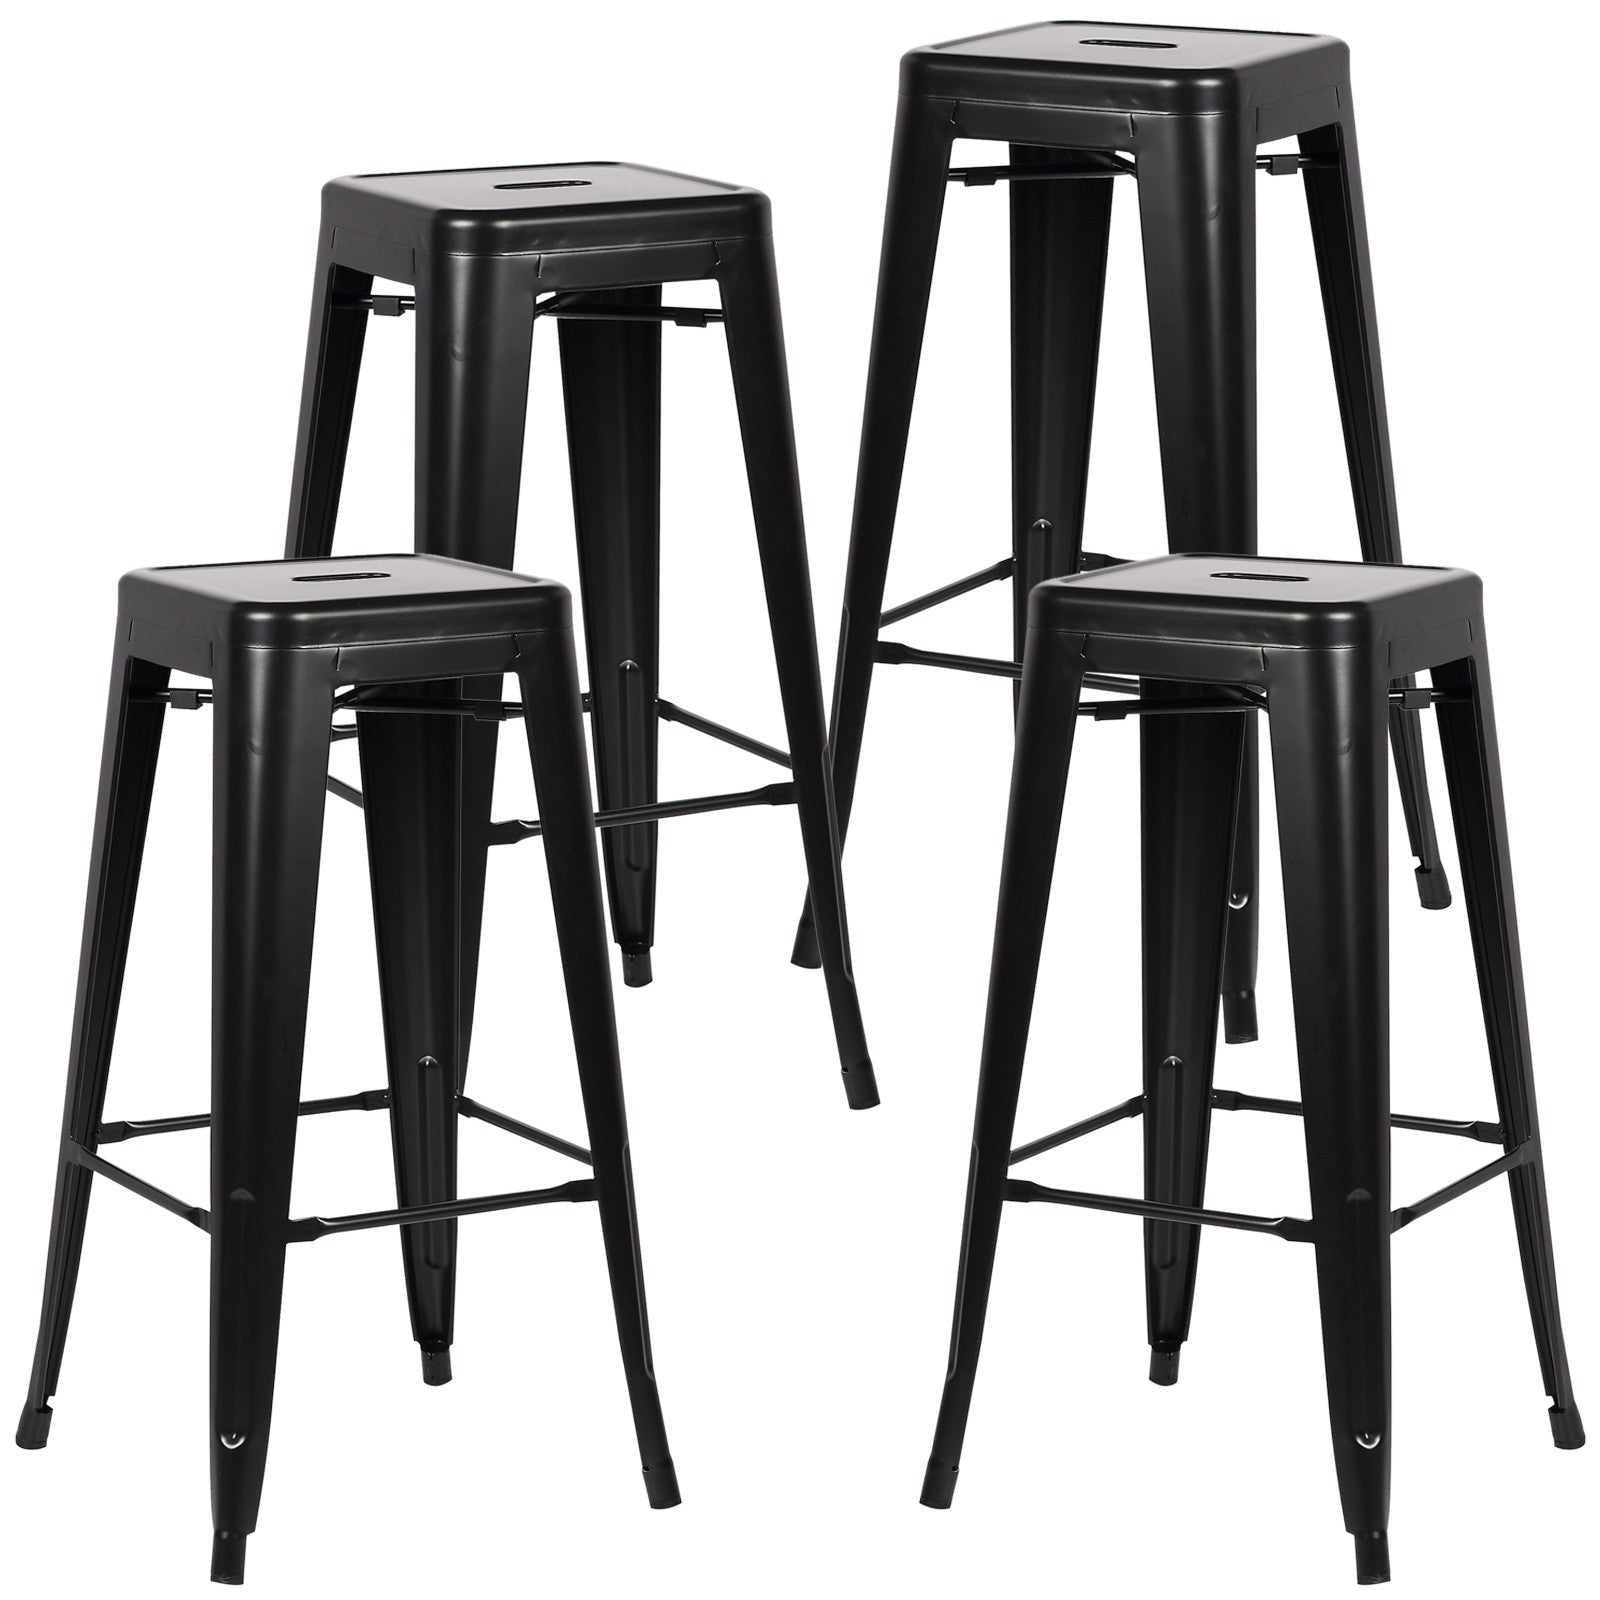 Tolix Style Trattoria 30 Quot Bar Counter Stool Set Of 4